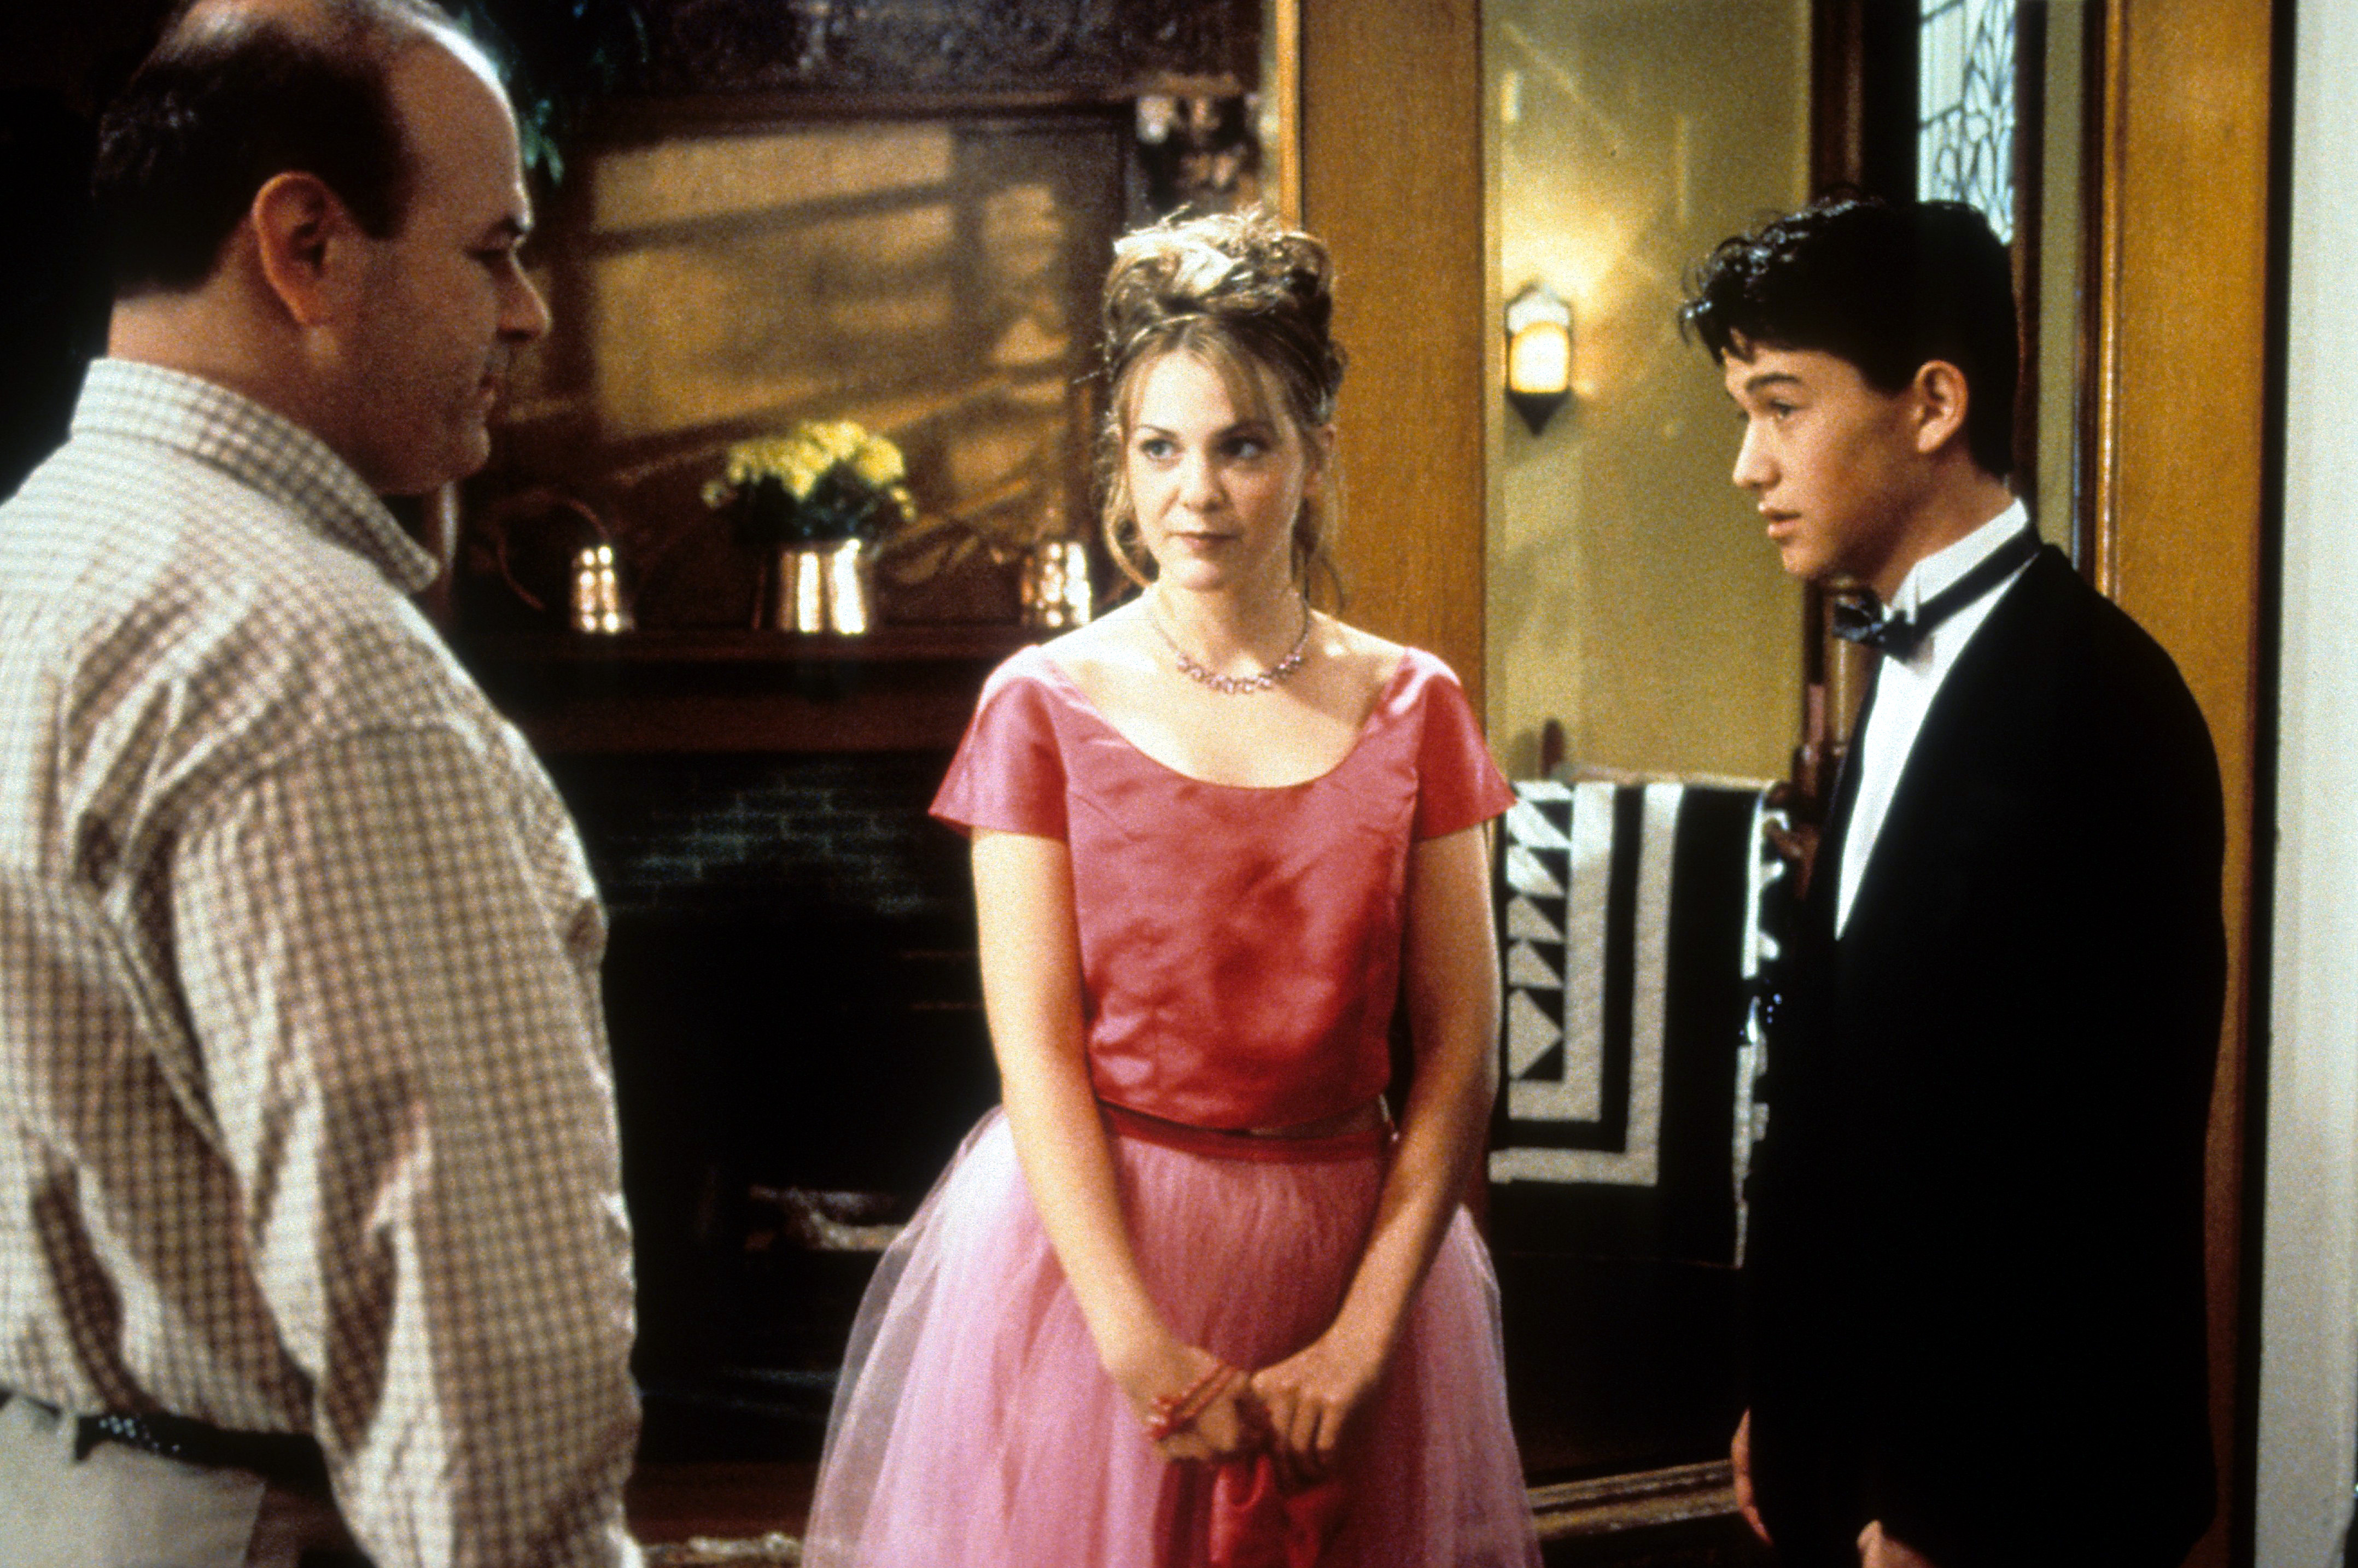 A young man in a tuxedo and a young woman in a pink prom dress speak with a balding man in a plaid shirt.